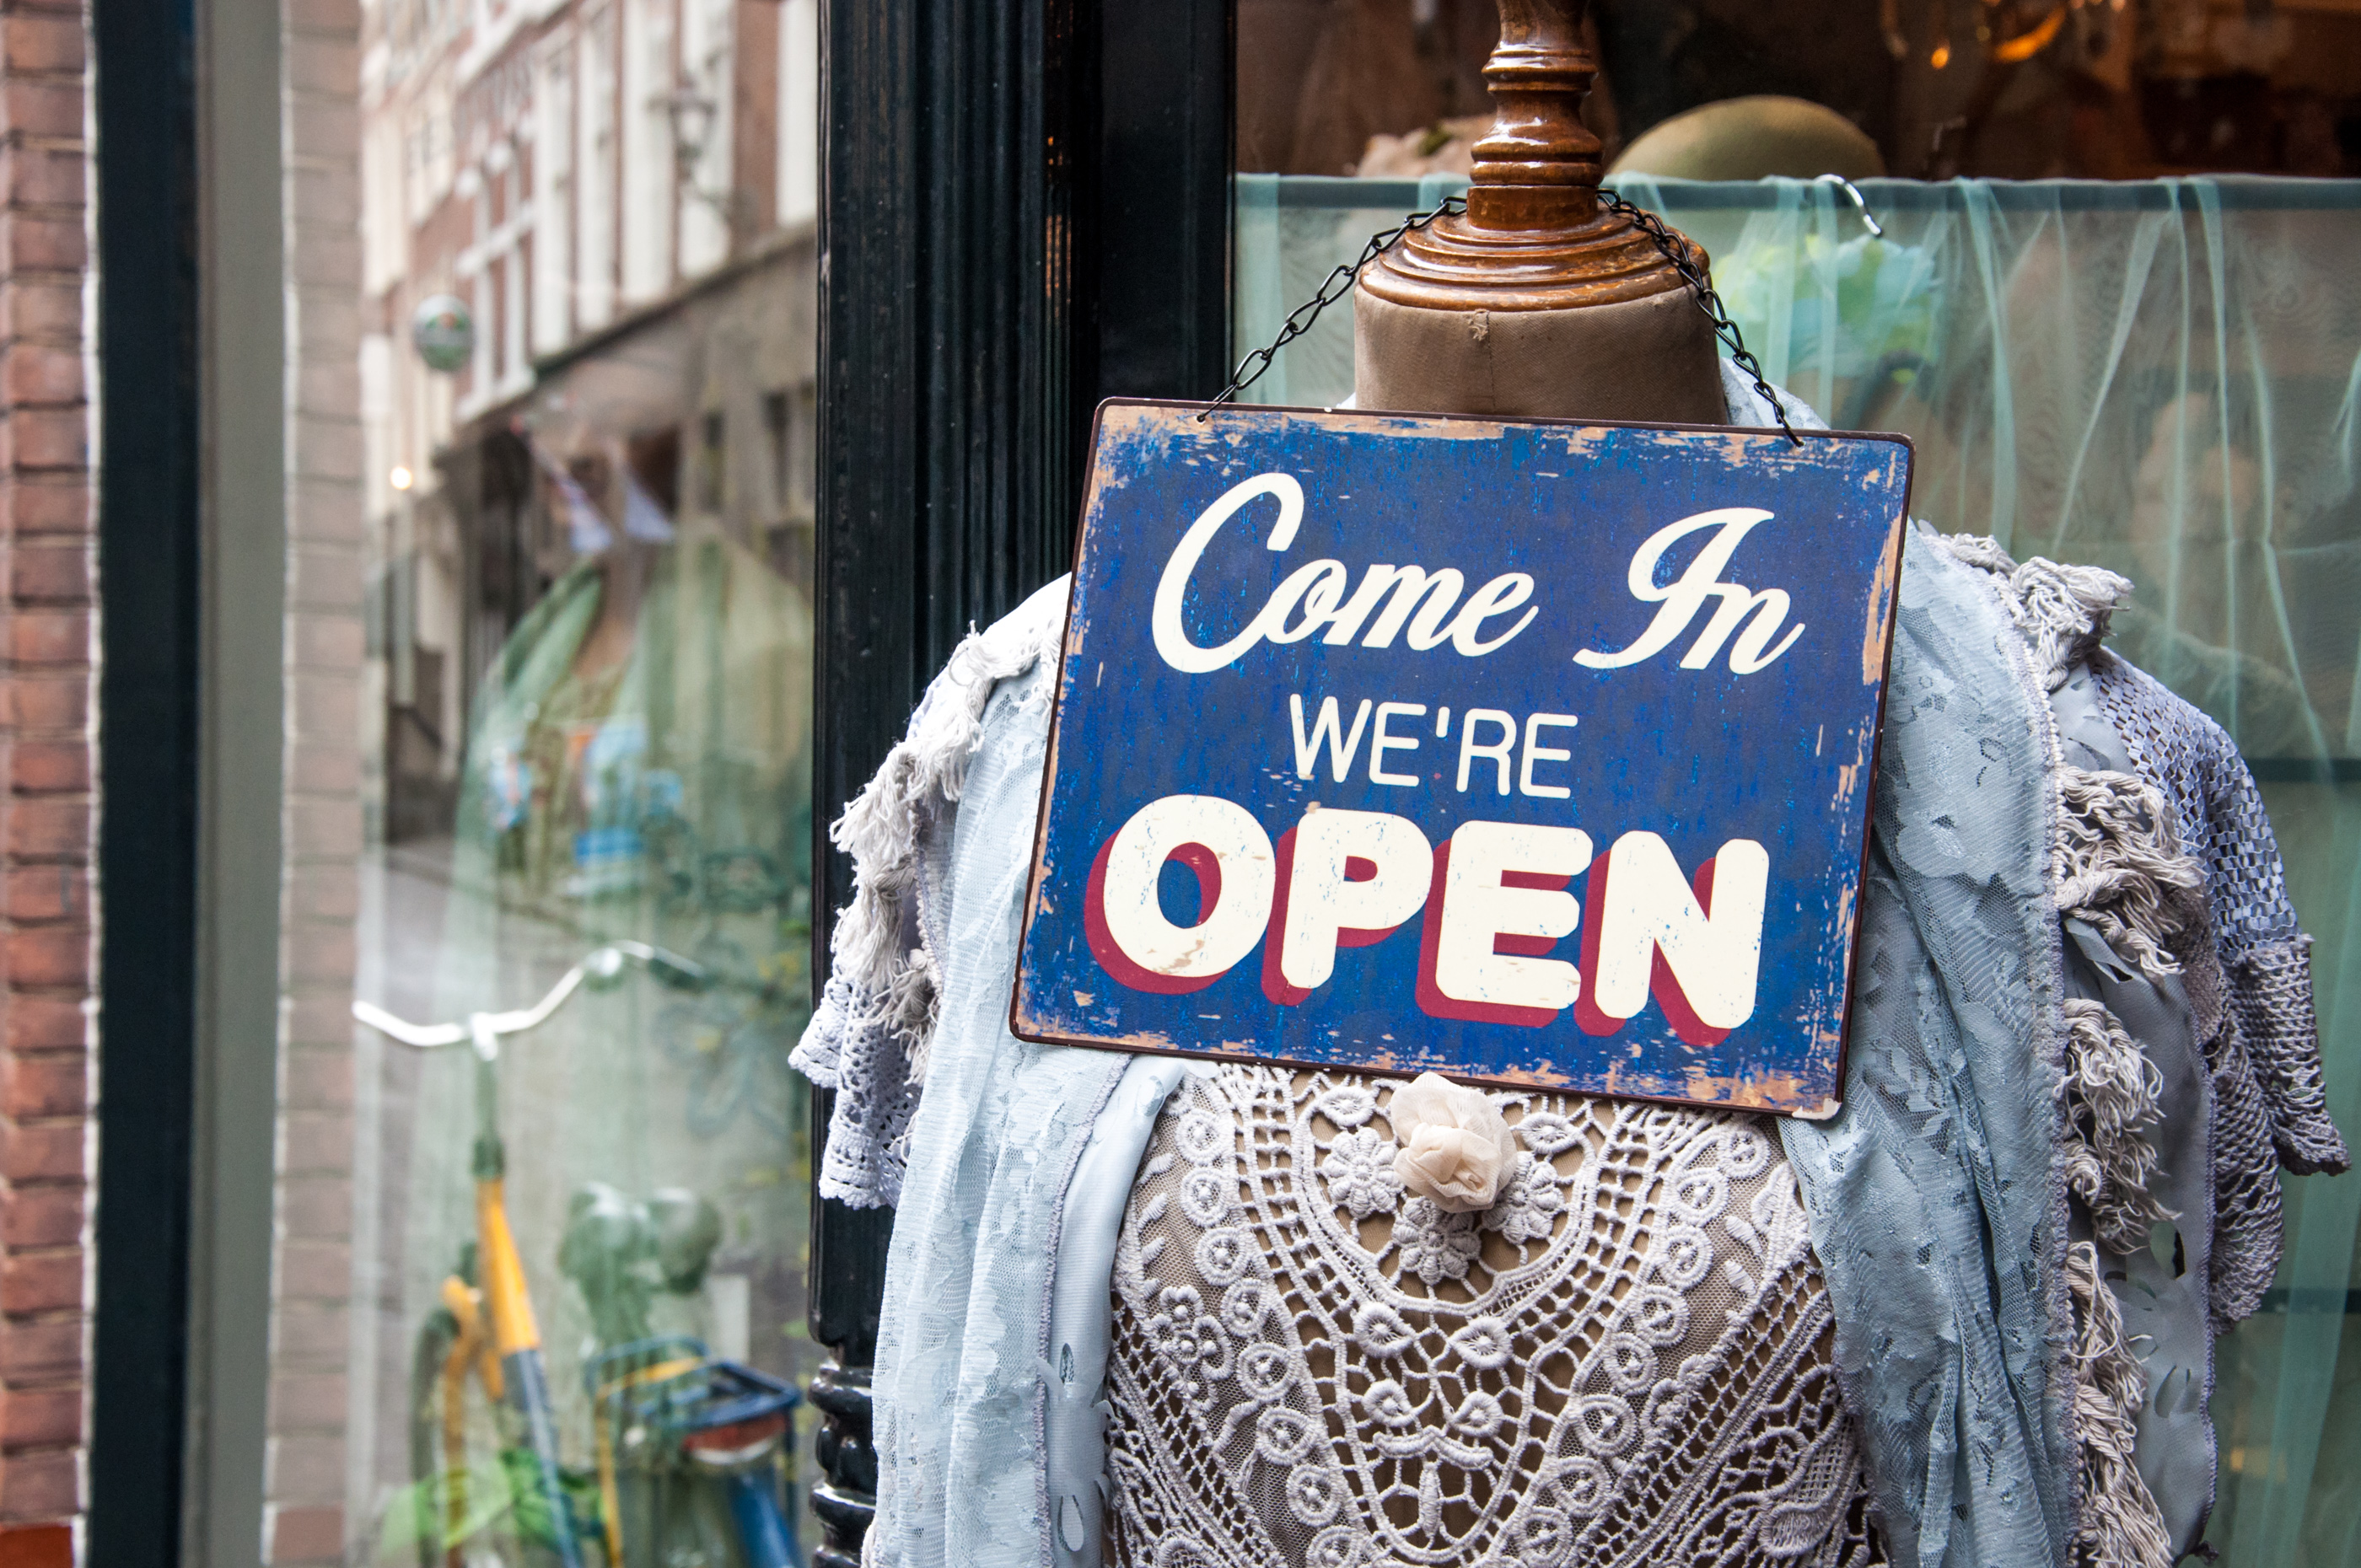 Open sign shop window photo